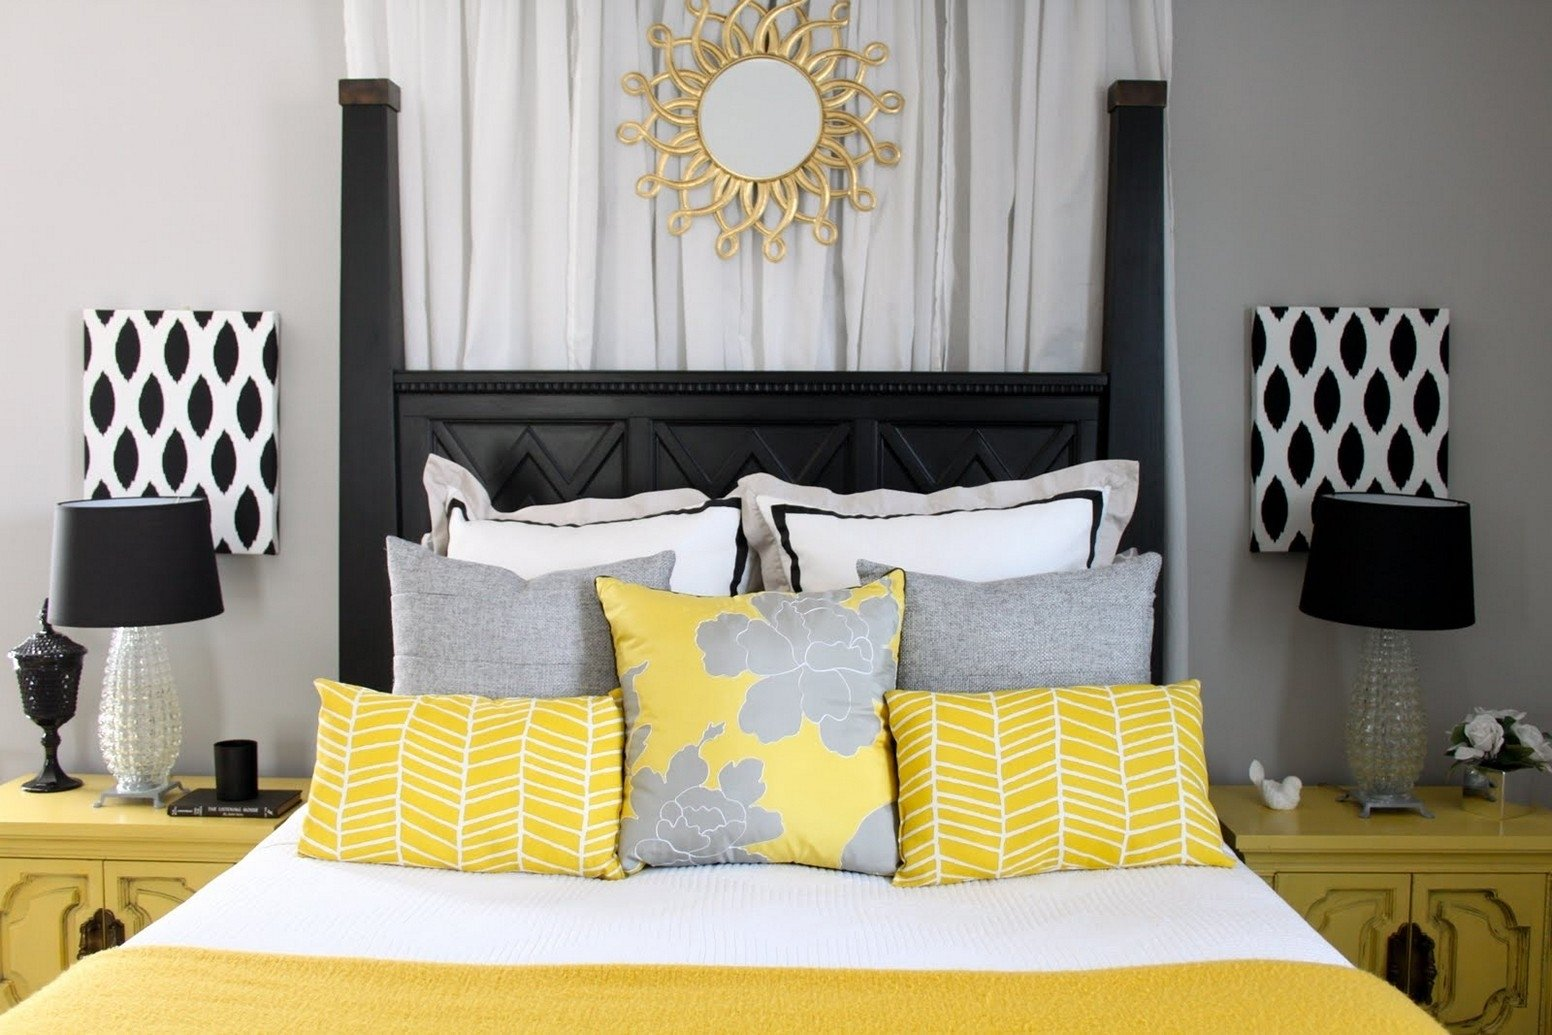 10 Attractive Yellow And Gray Bedroom Ideas yellow and grey bedroom decor nurani org yellow and gray living 2020